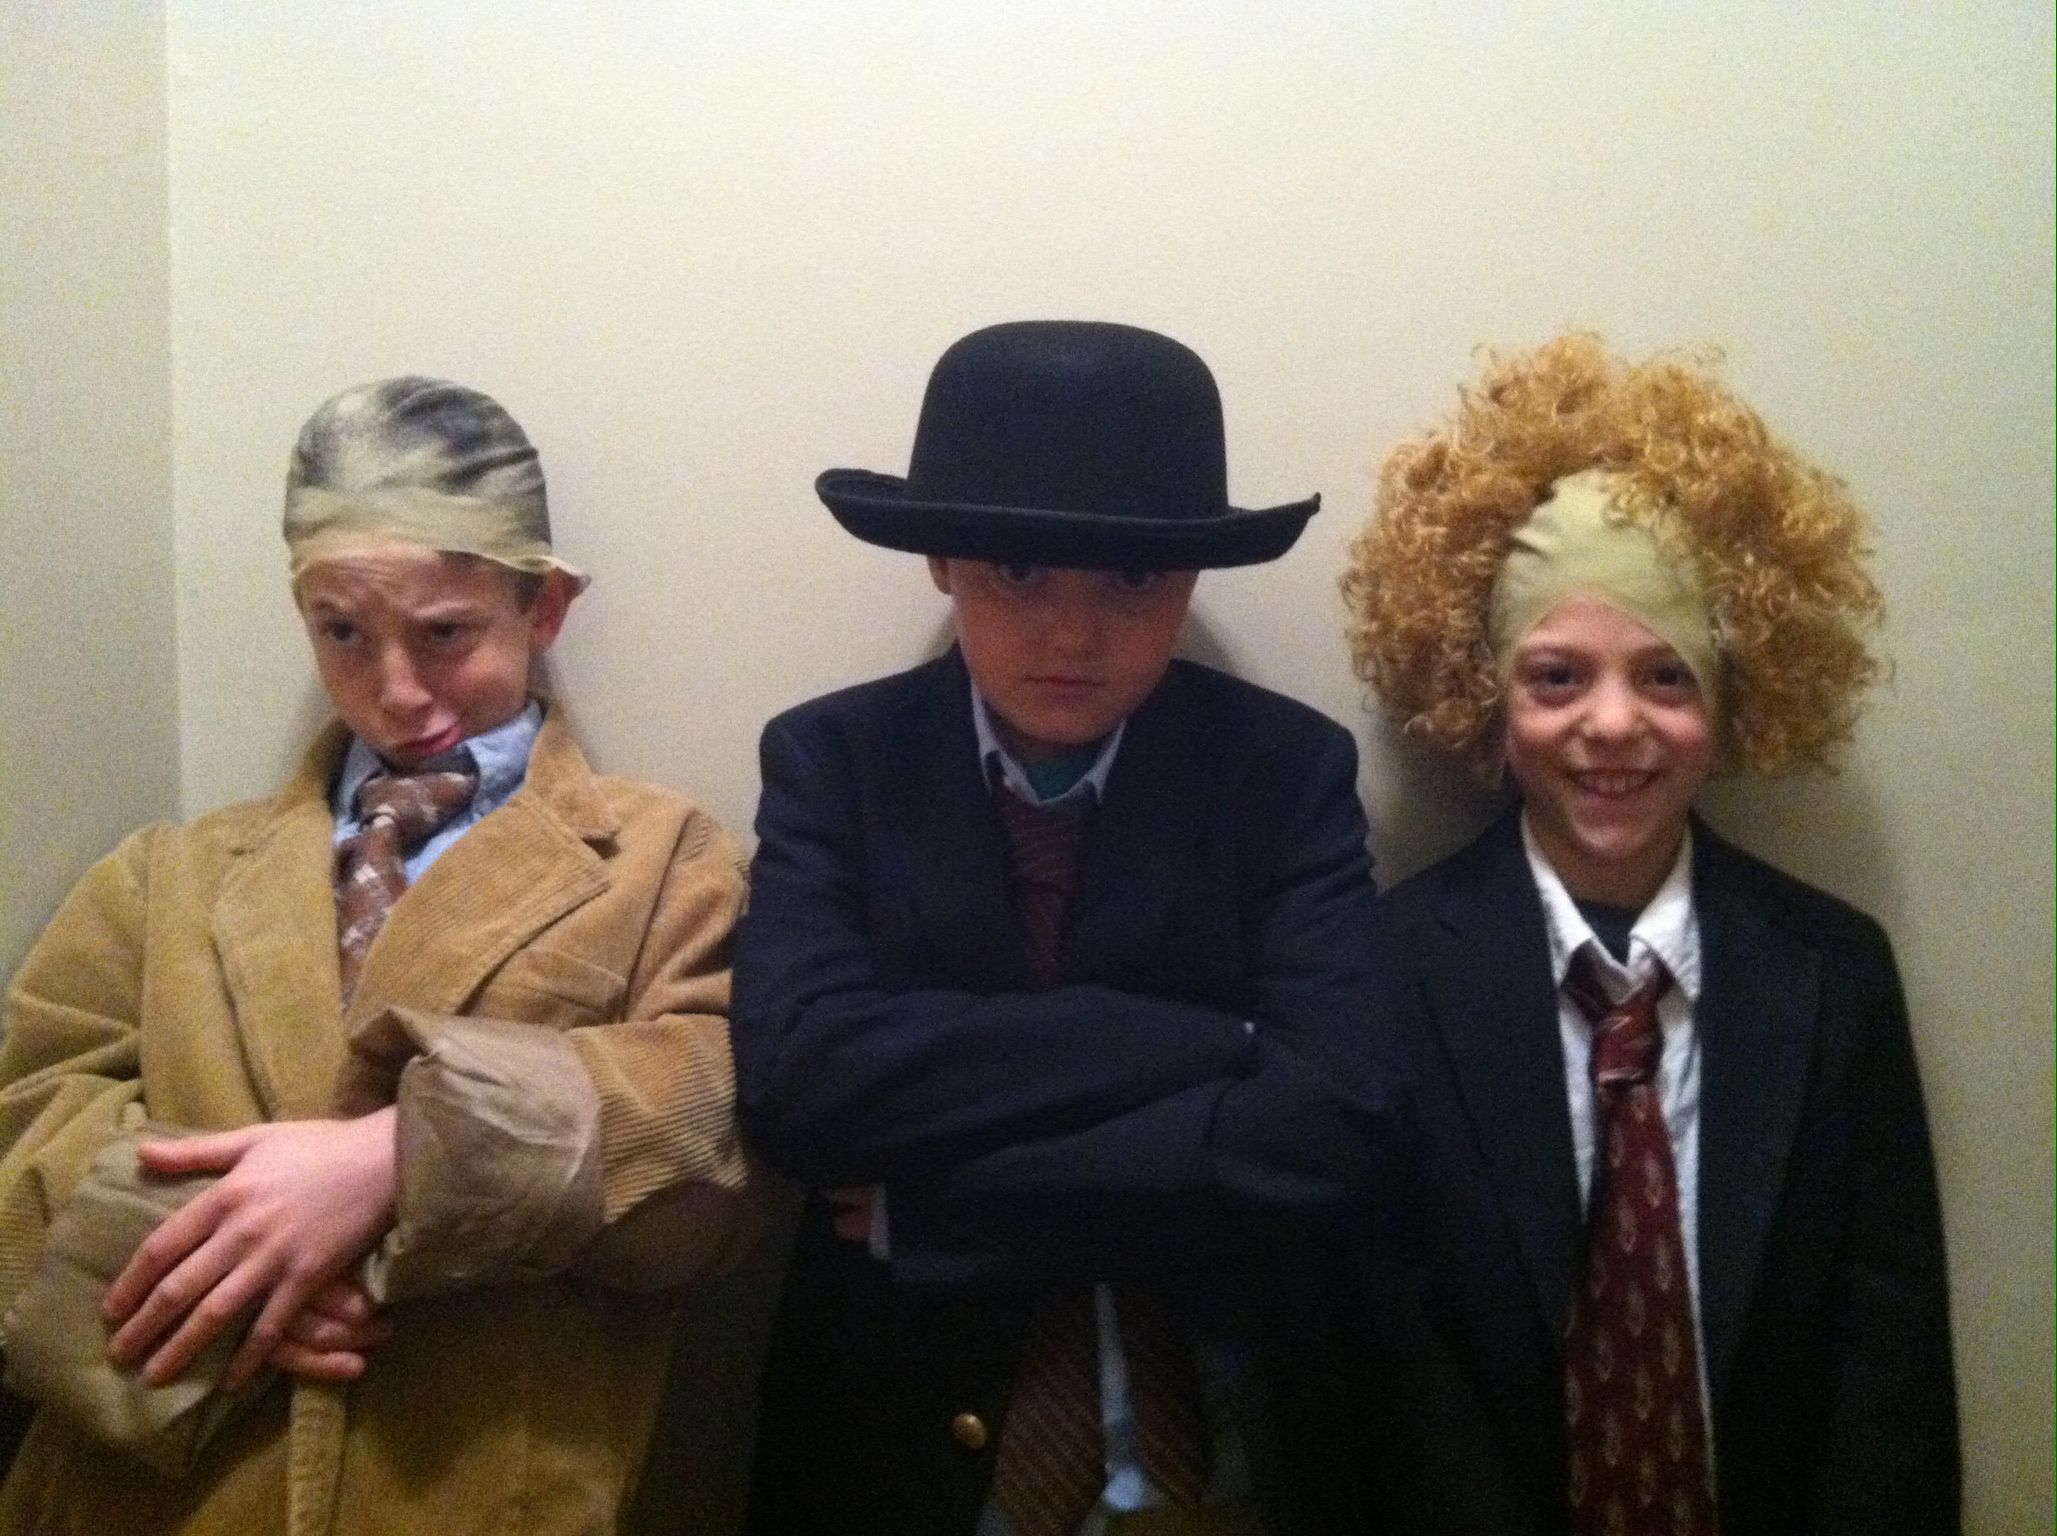 #304/365 Happy Halloween 2013 The Three Stooges